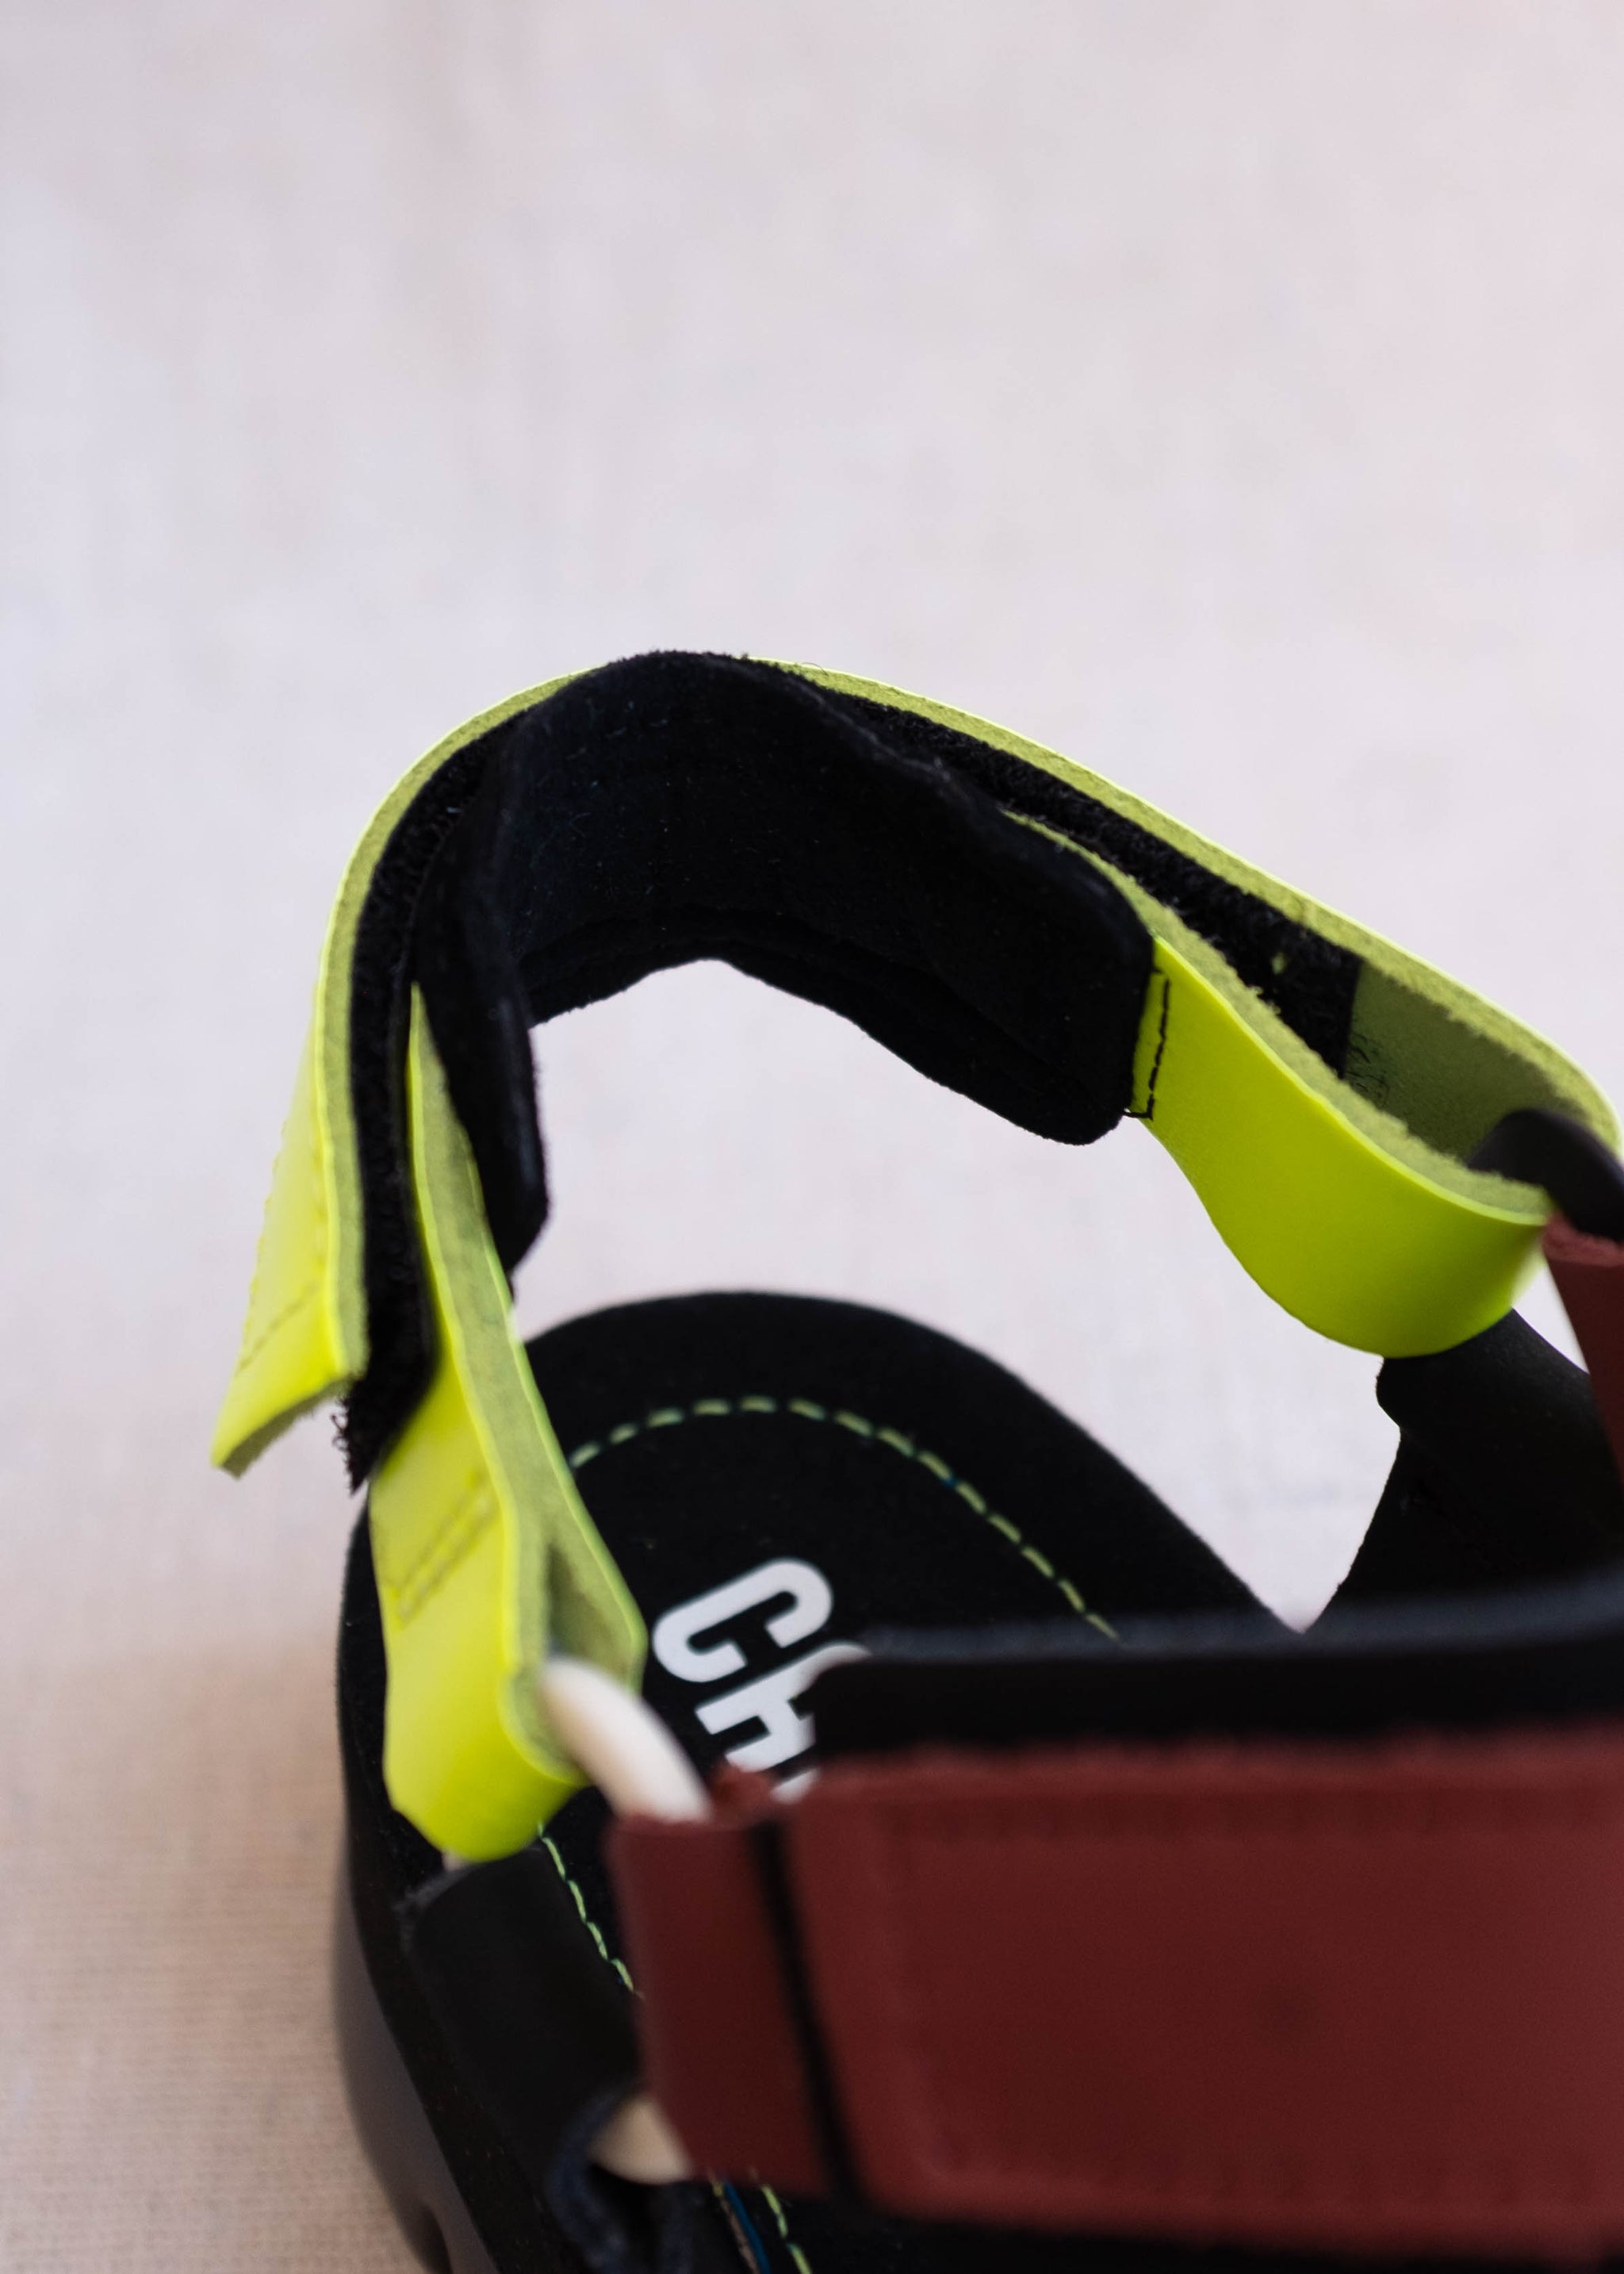 Detail view of black platform sandals with neon yellow, maroon, and black straps.